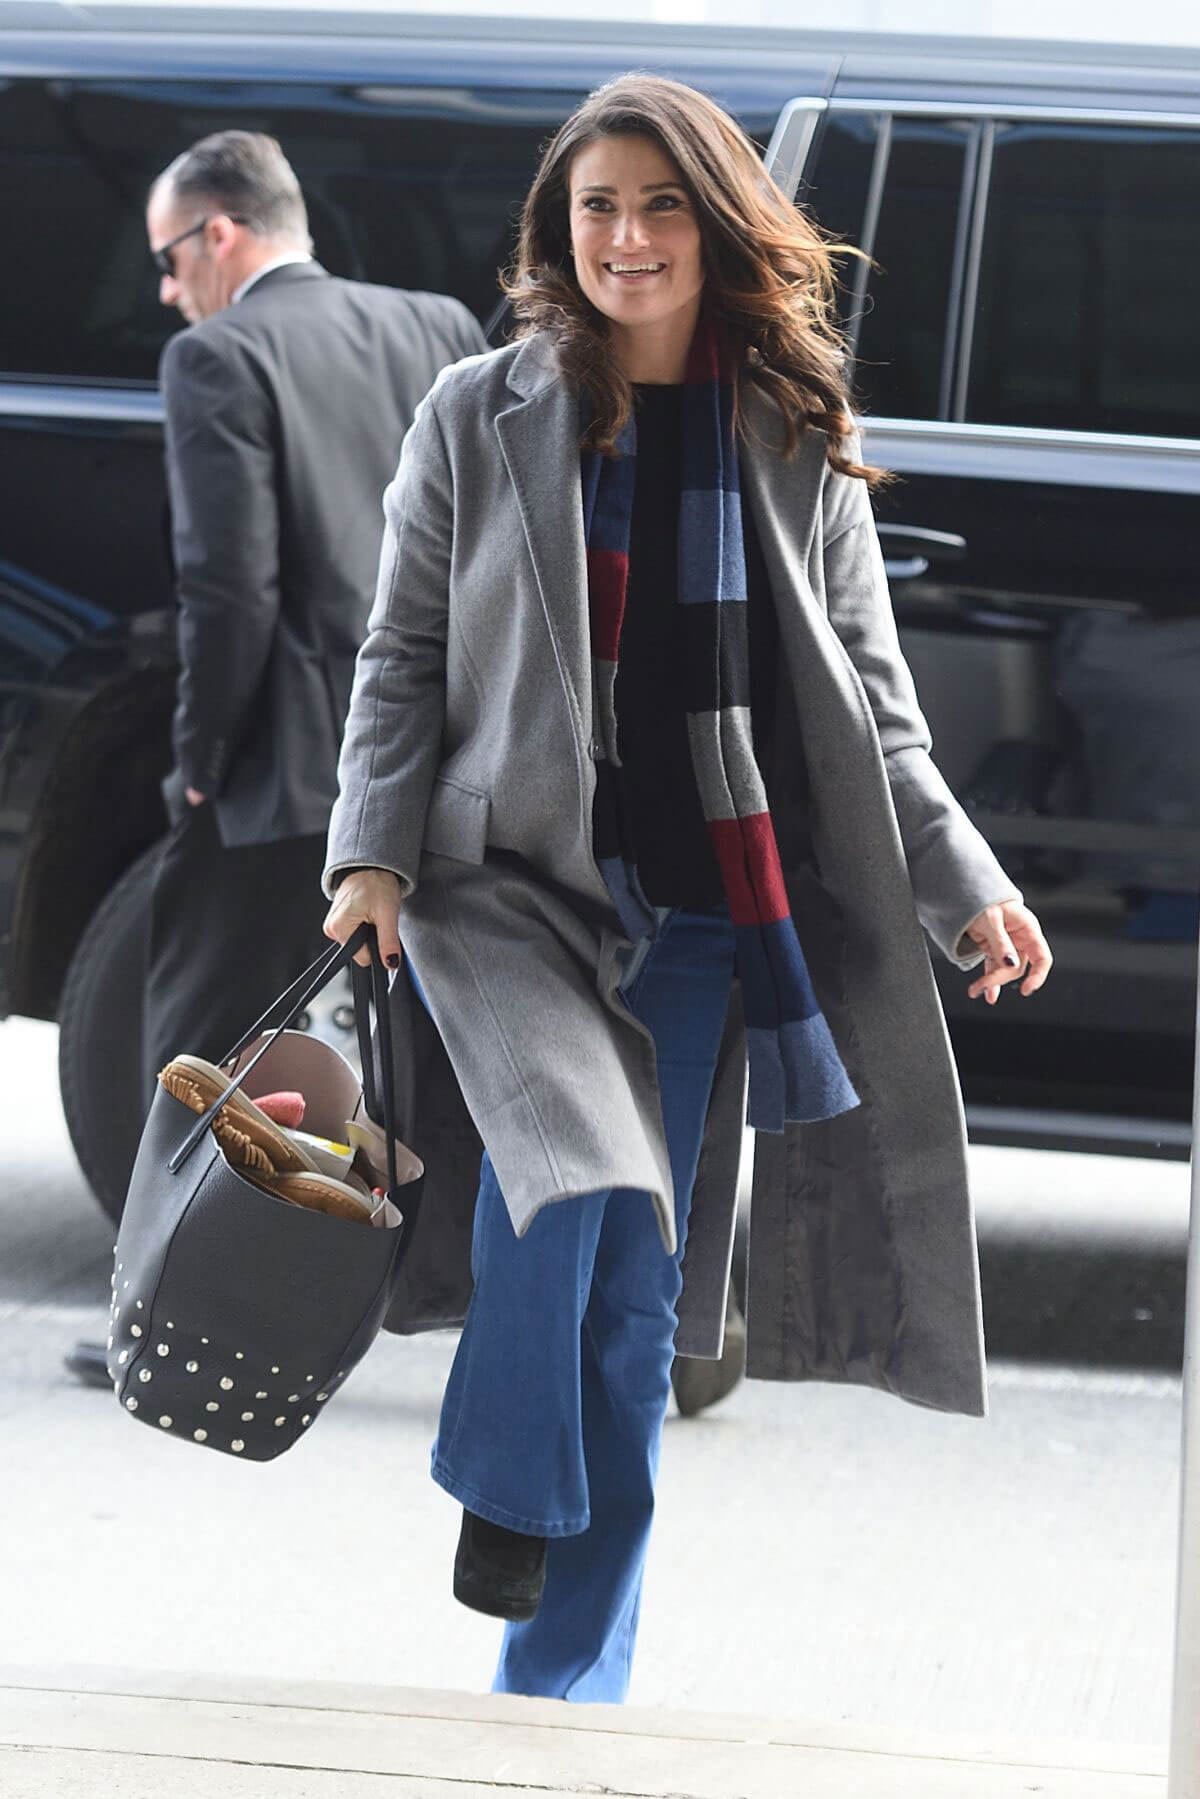 Idina Menzel at Jfk Airport in New York